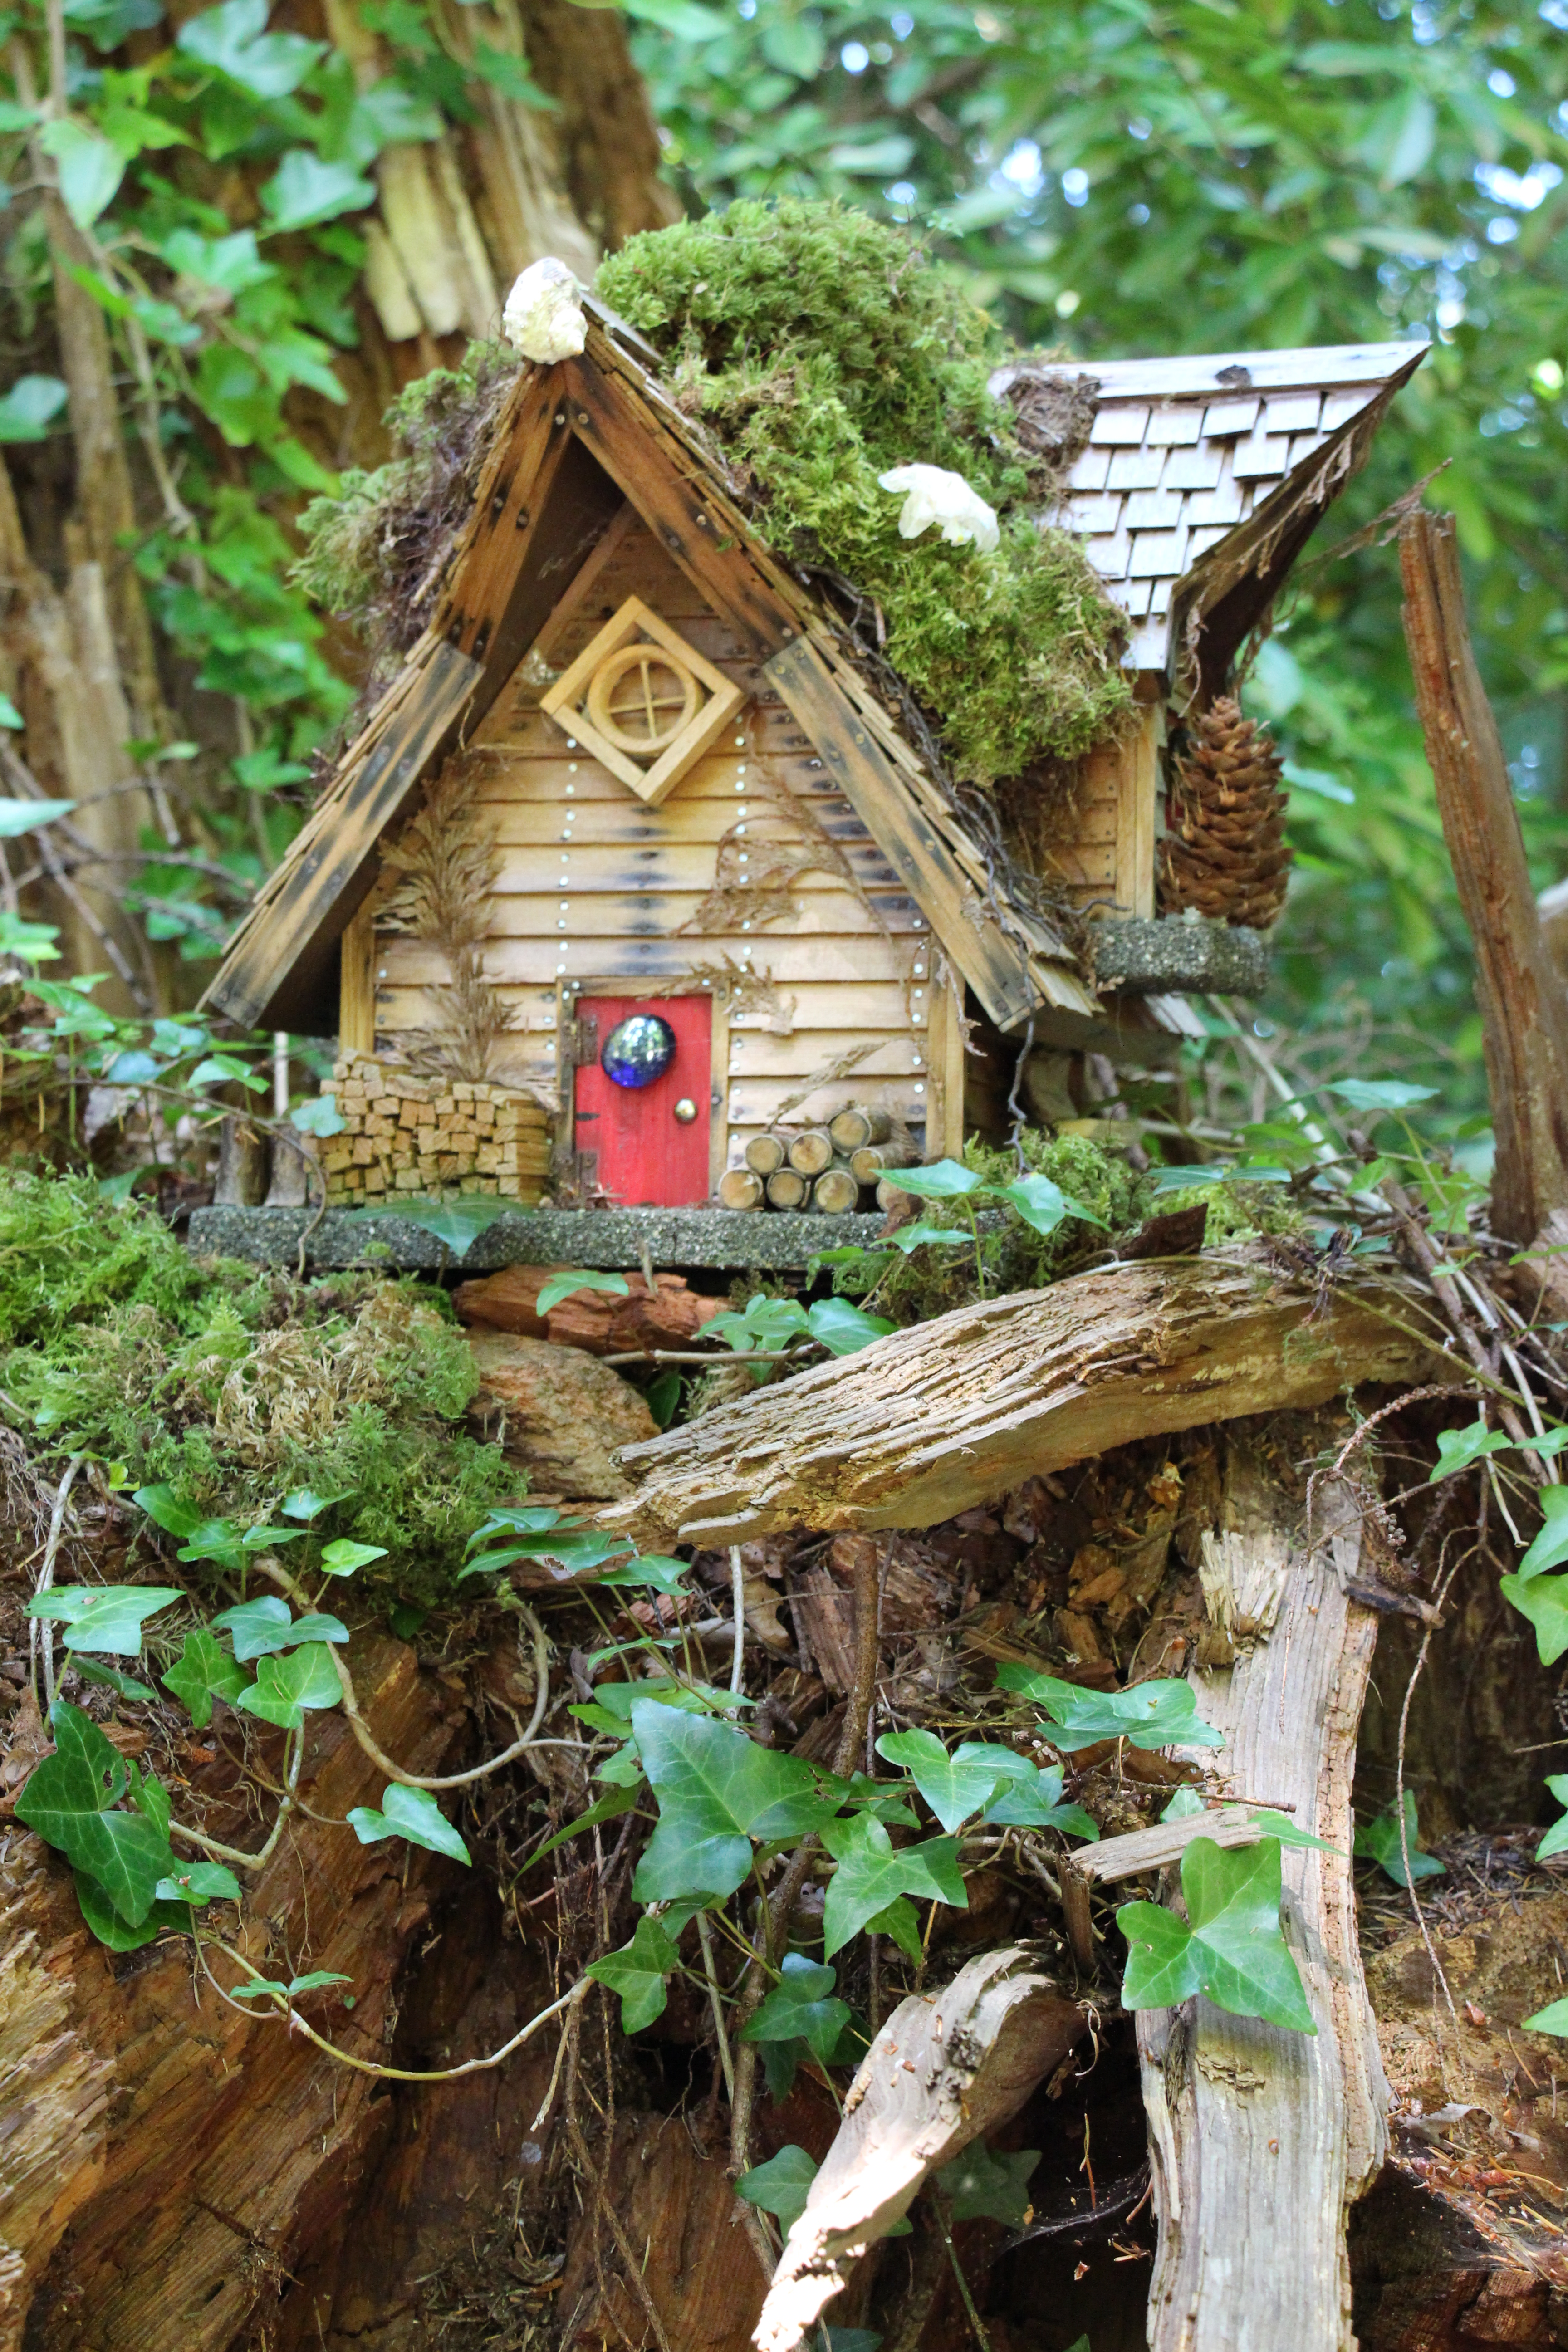 Fairy house at Milner Gardens and Woodland in Qualicum Beach on Vancouver Island